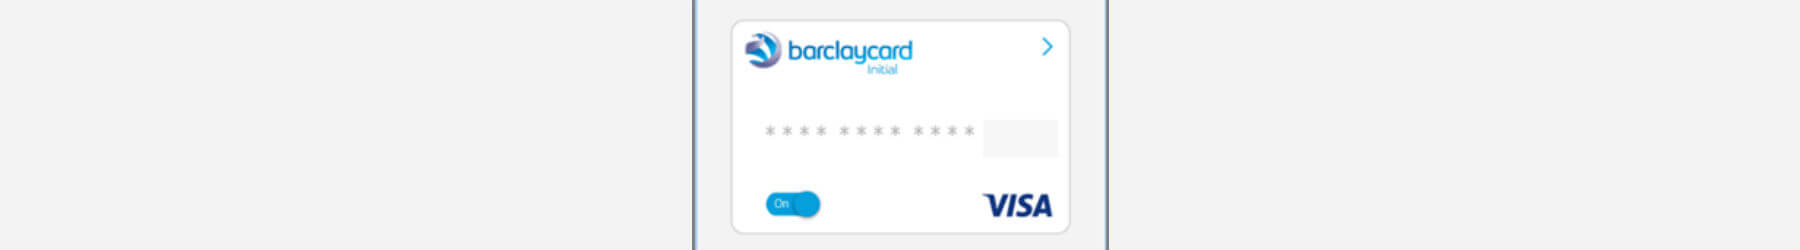 Barclaycard Android